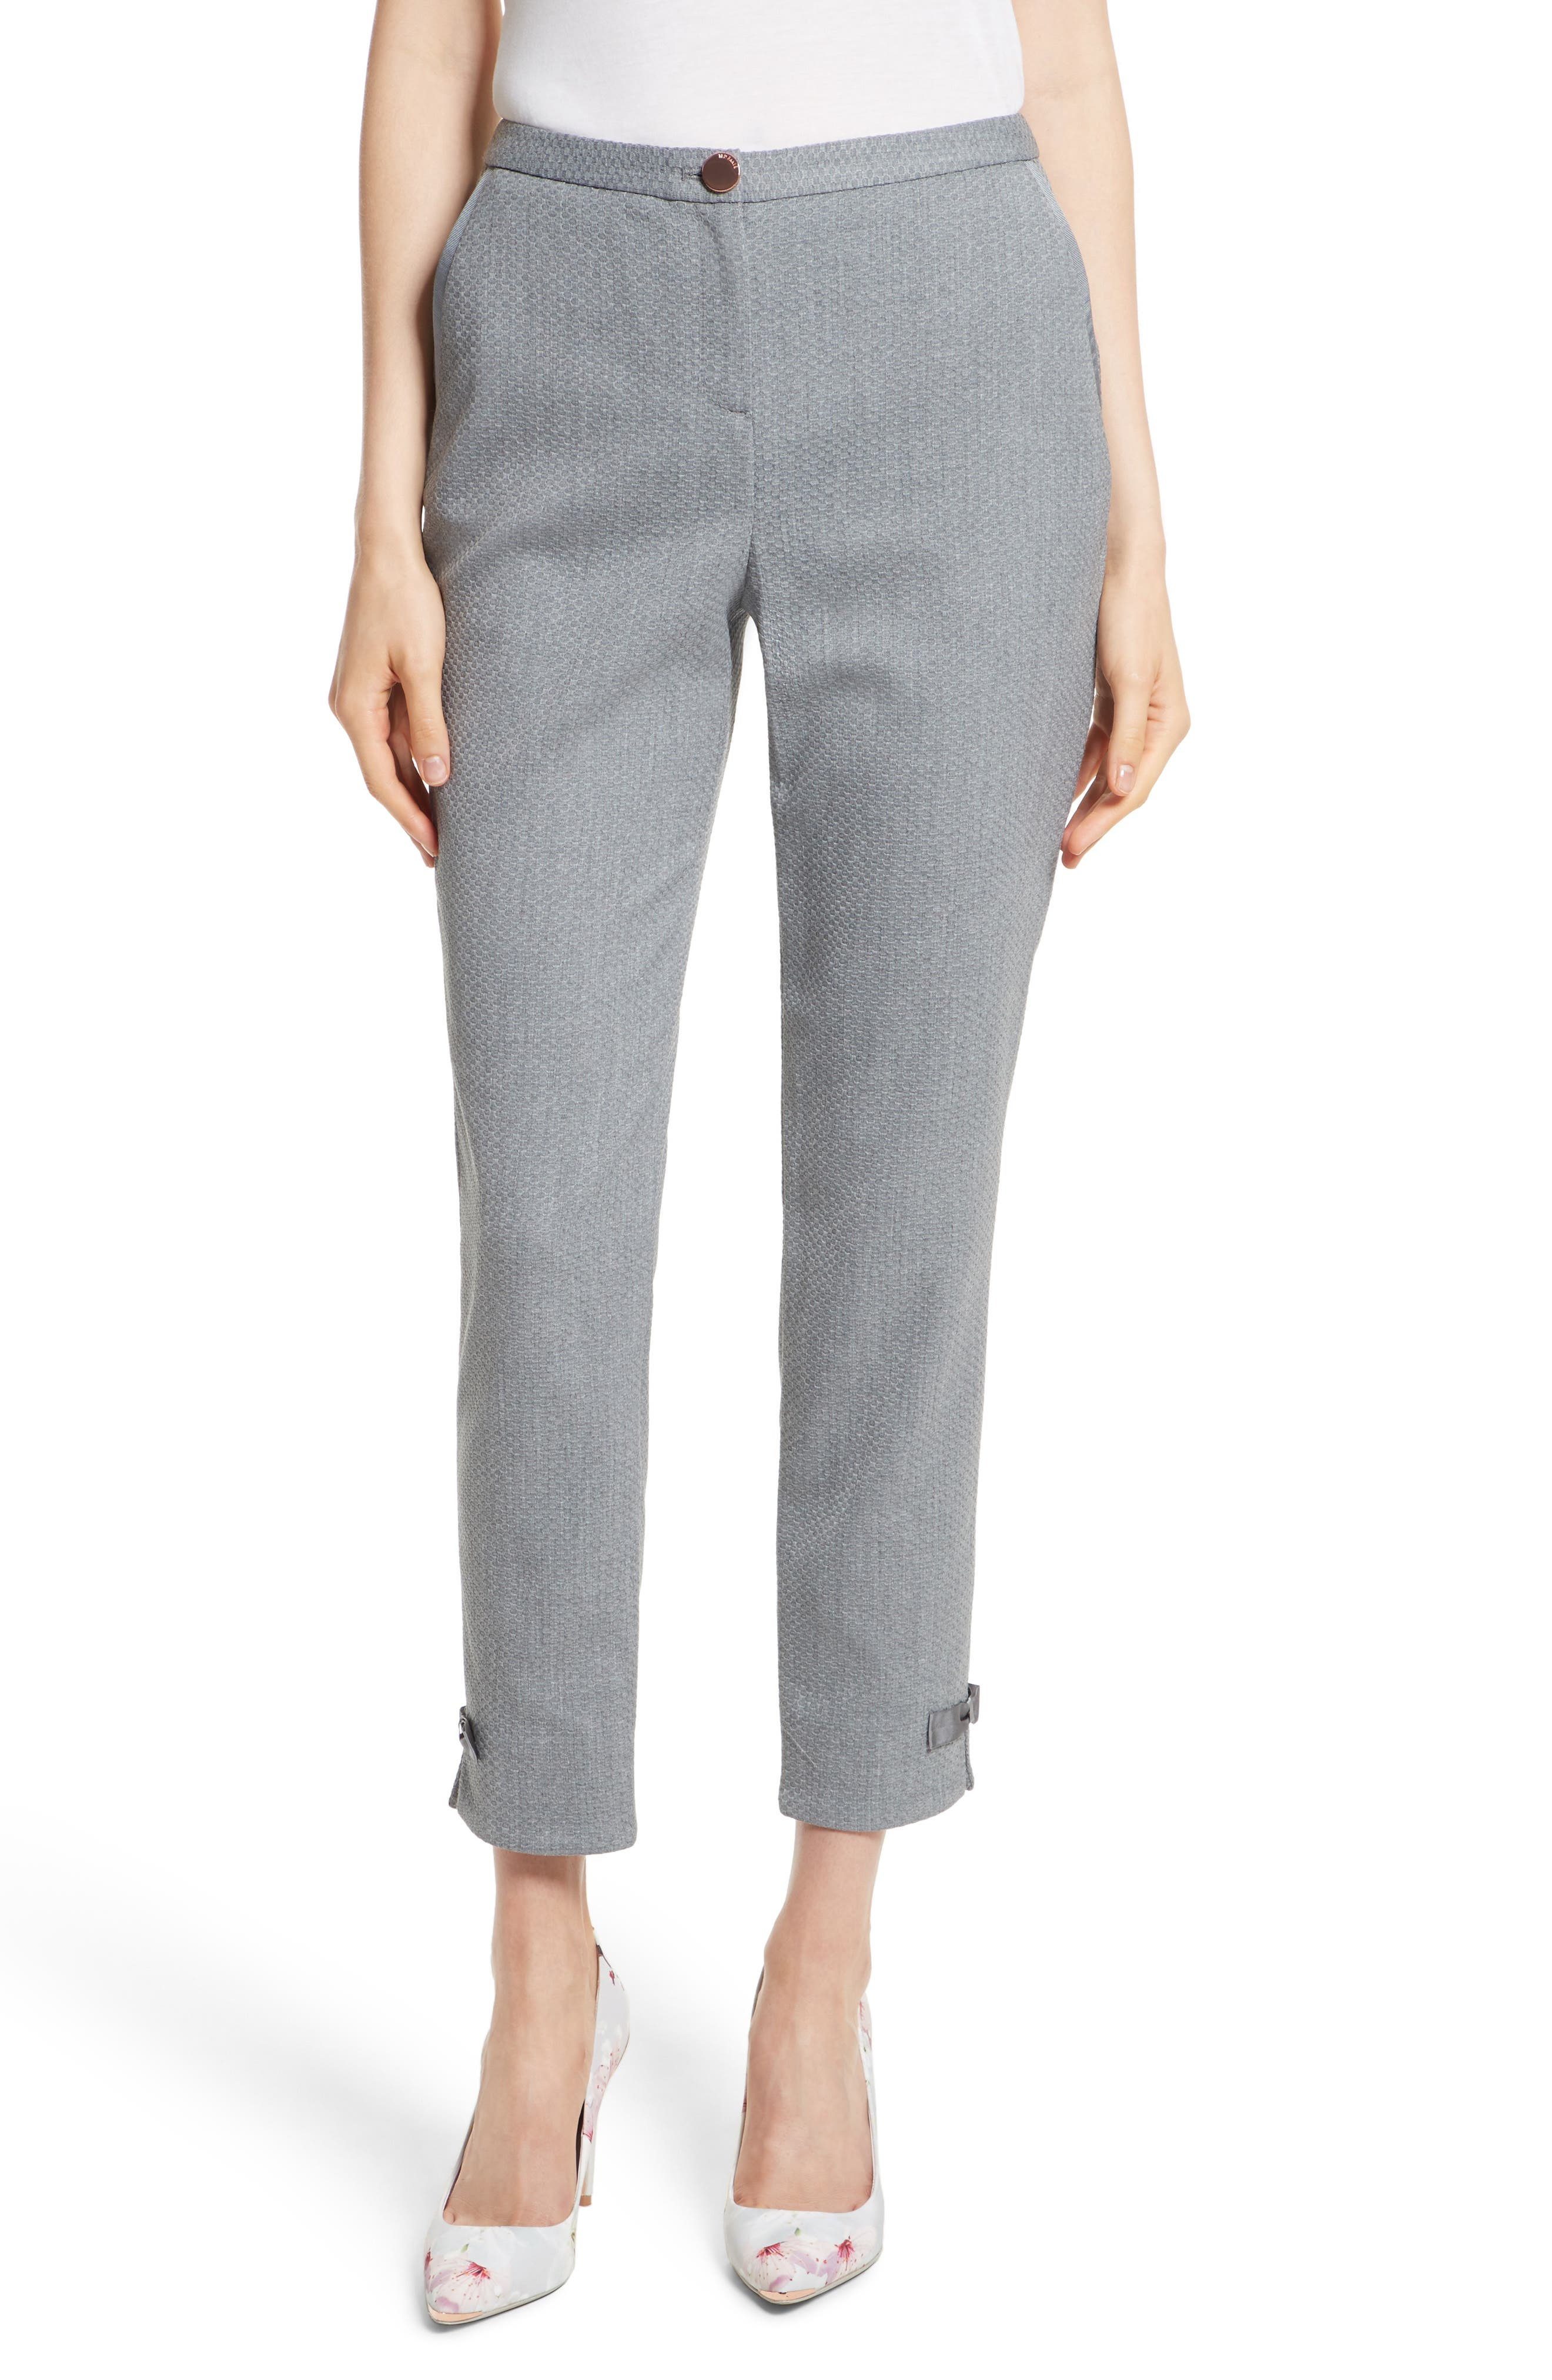 Nadaet Bow Detail Textured Ankle Trousers,                             Main thumbnail 1, color,                             021